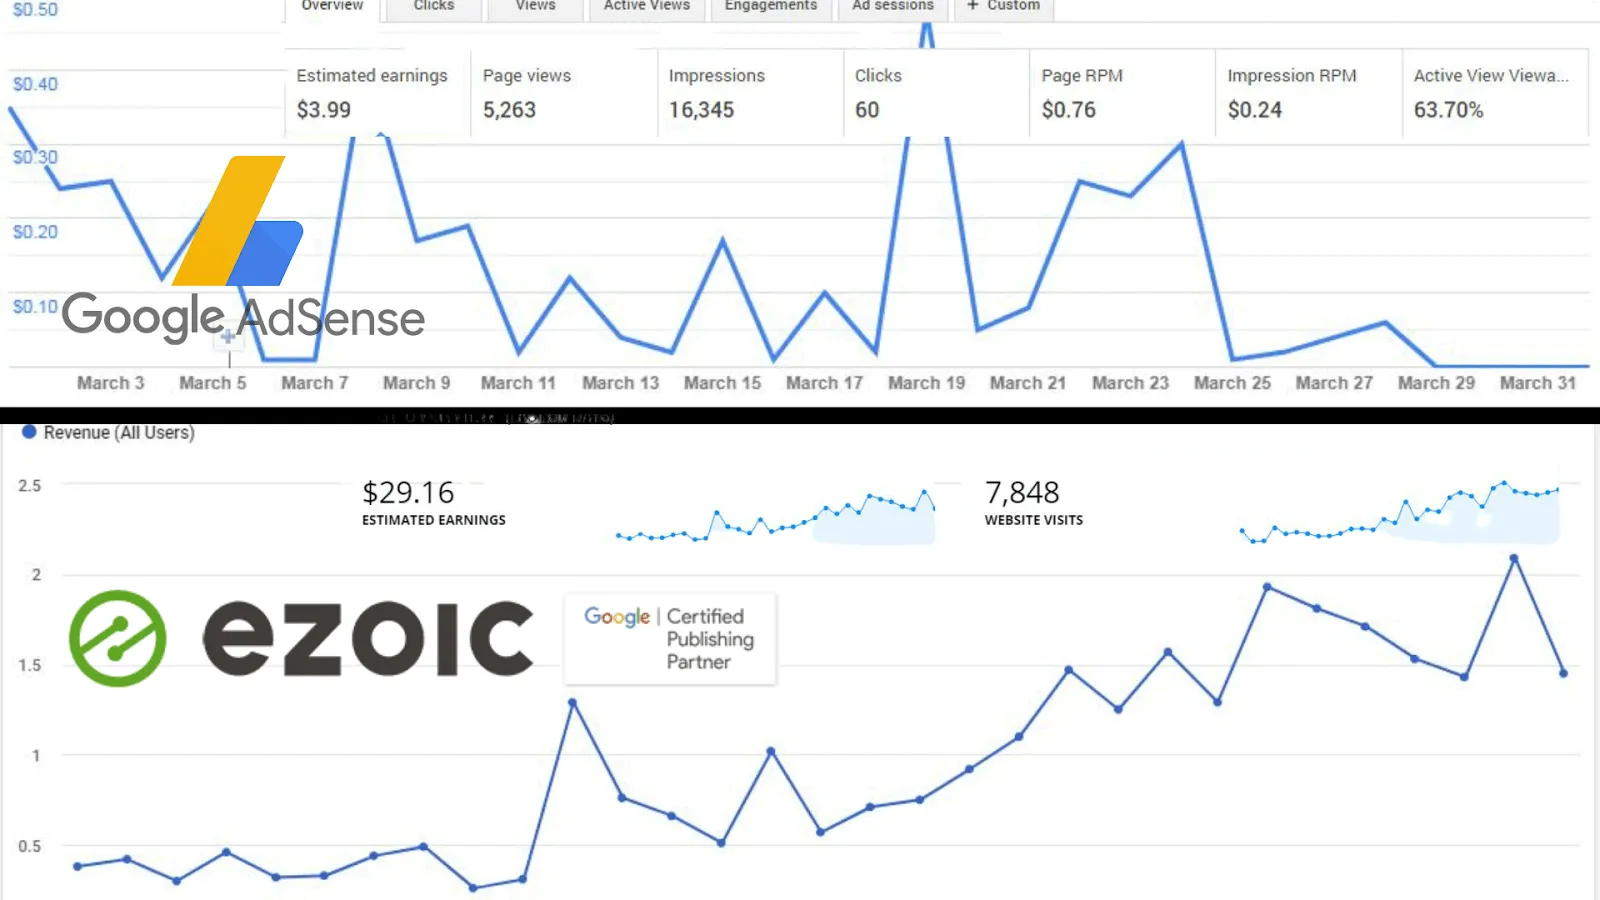 Adsense vs Ezoic earning in Pakistan